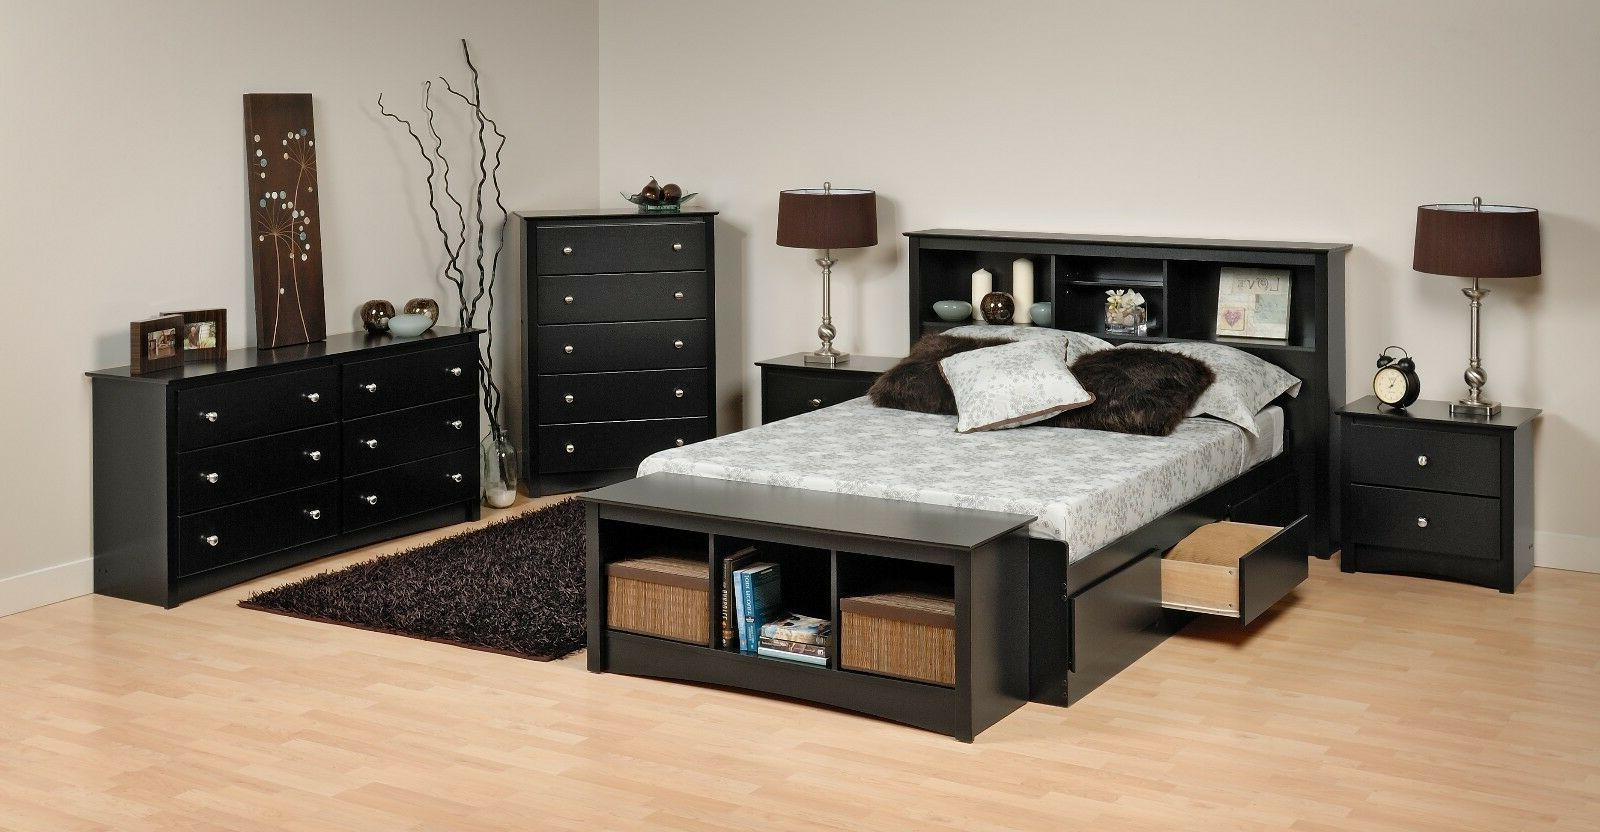 sonoma platform storage bed dresser chest nightstand